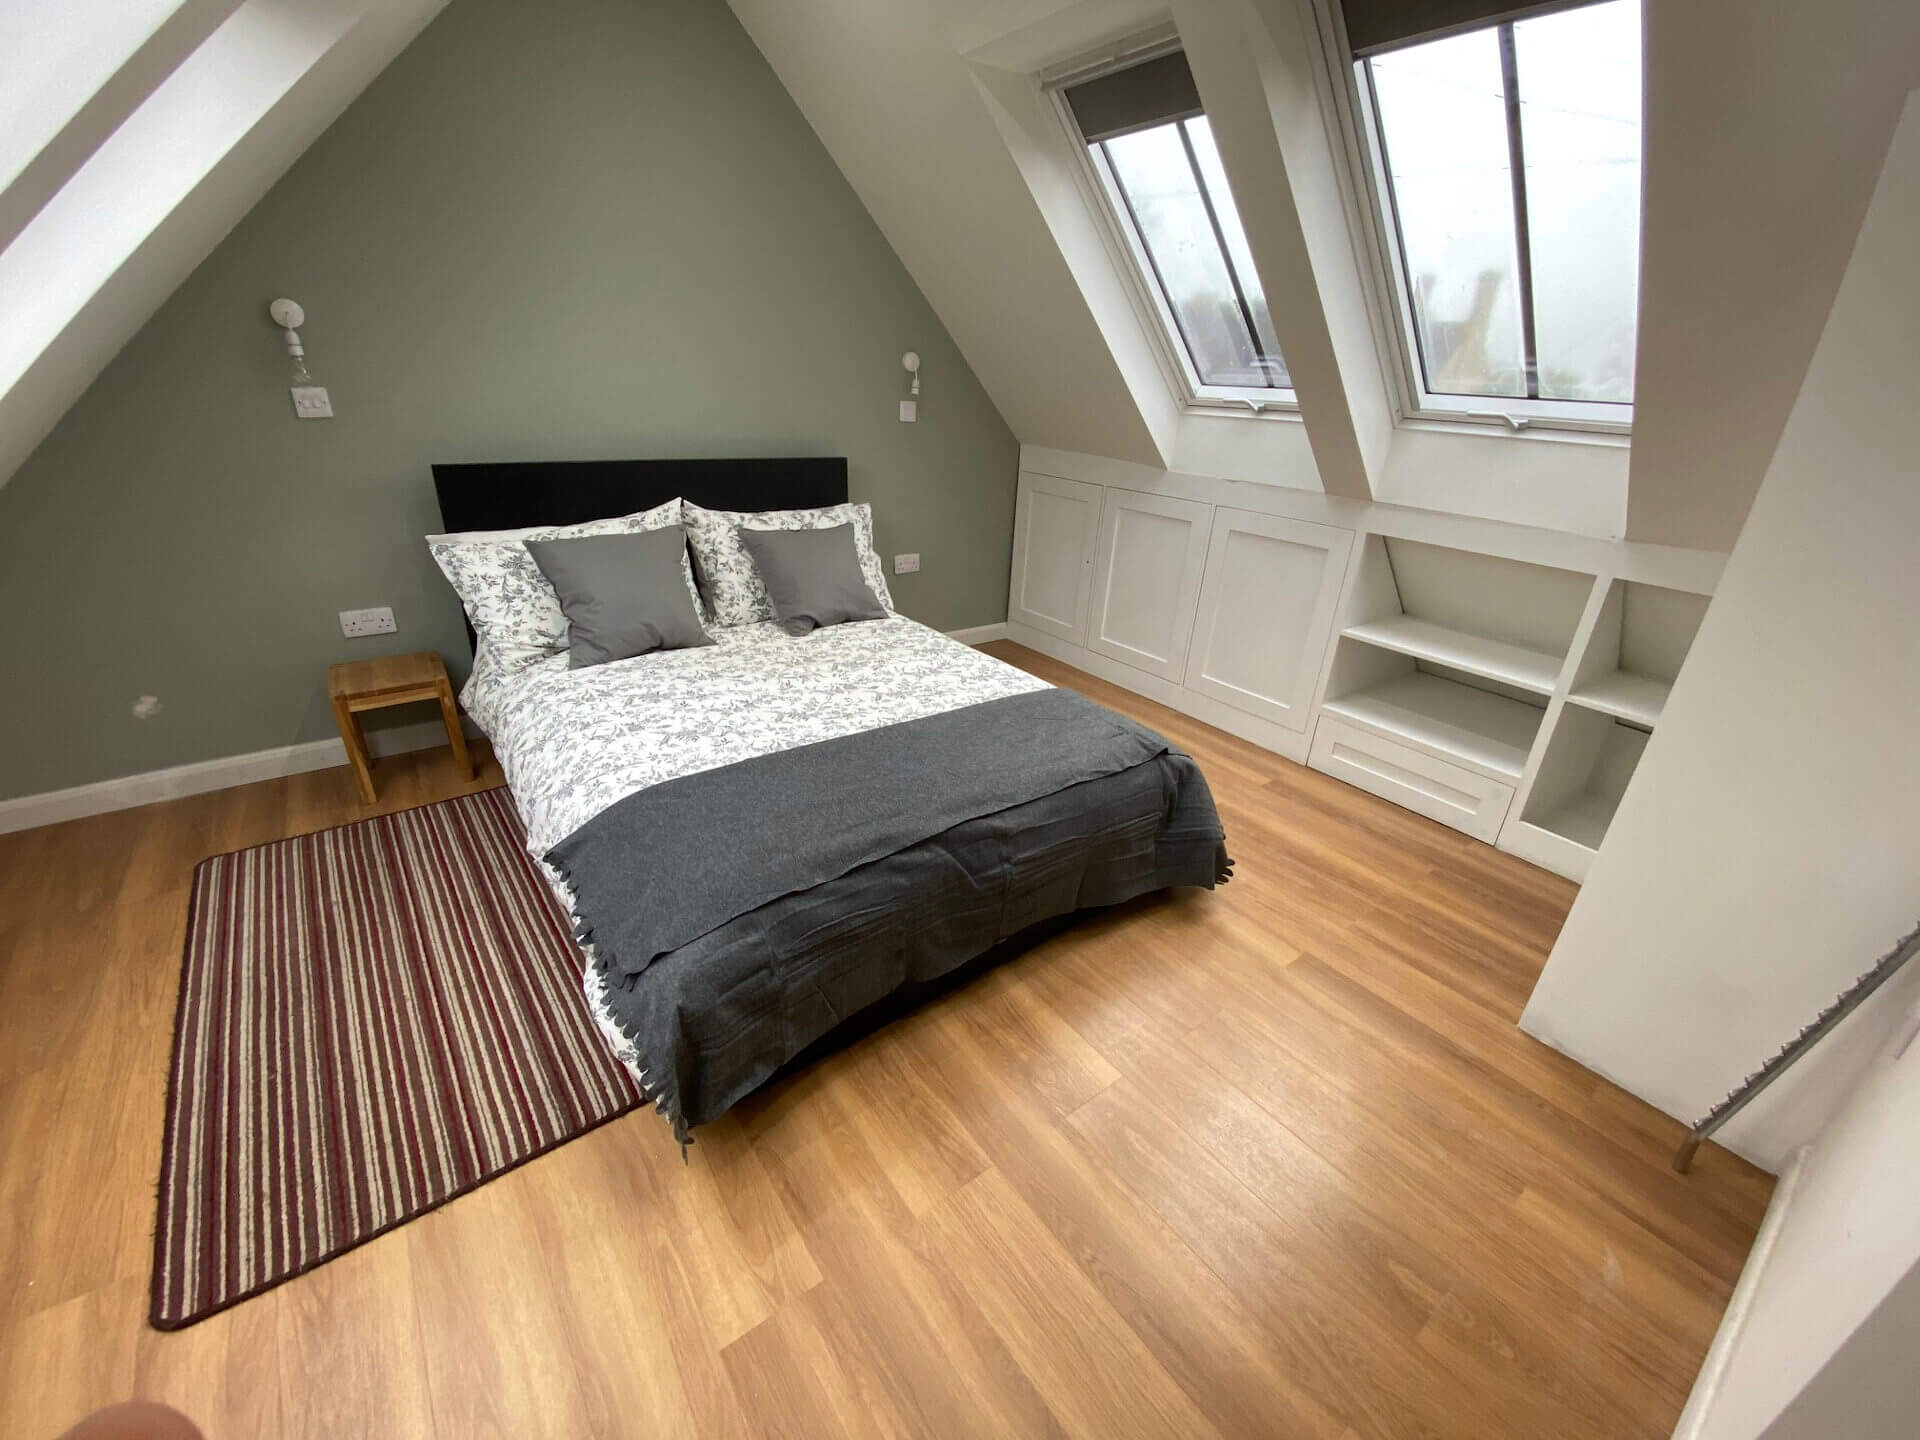 loft-conversion-by-touchstone-lofts (12)